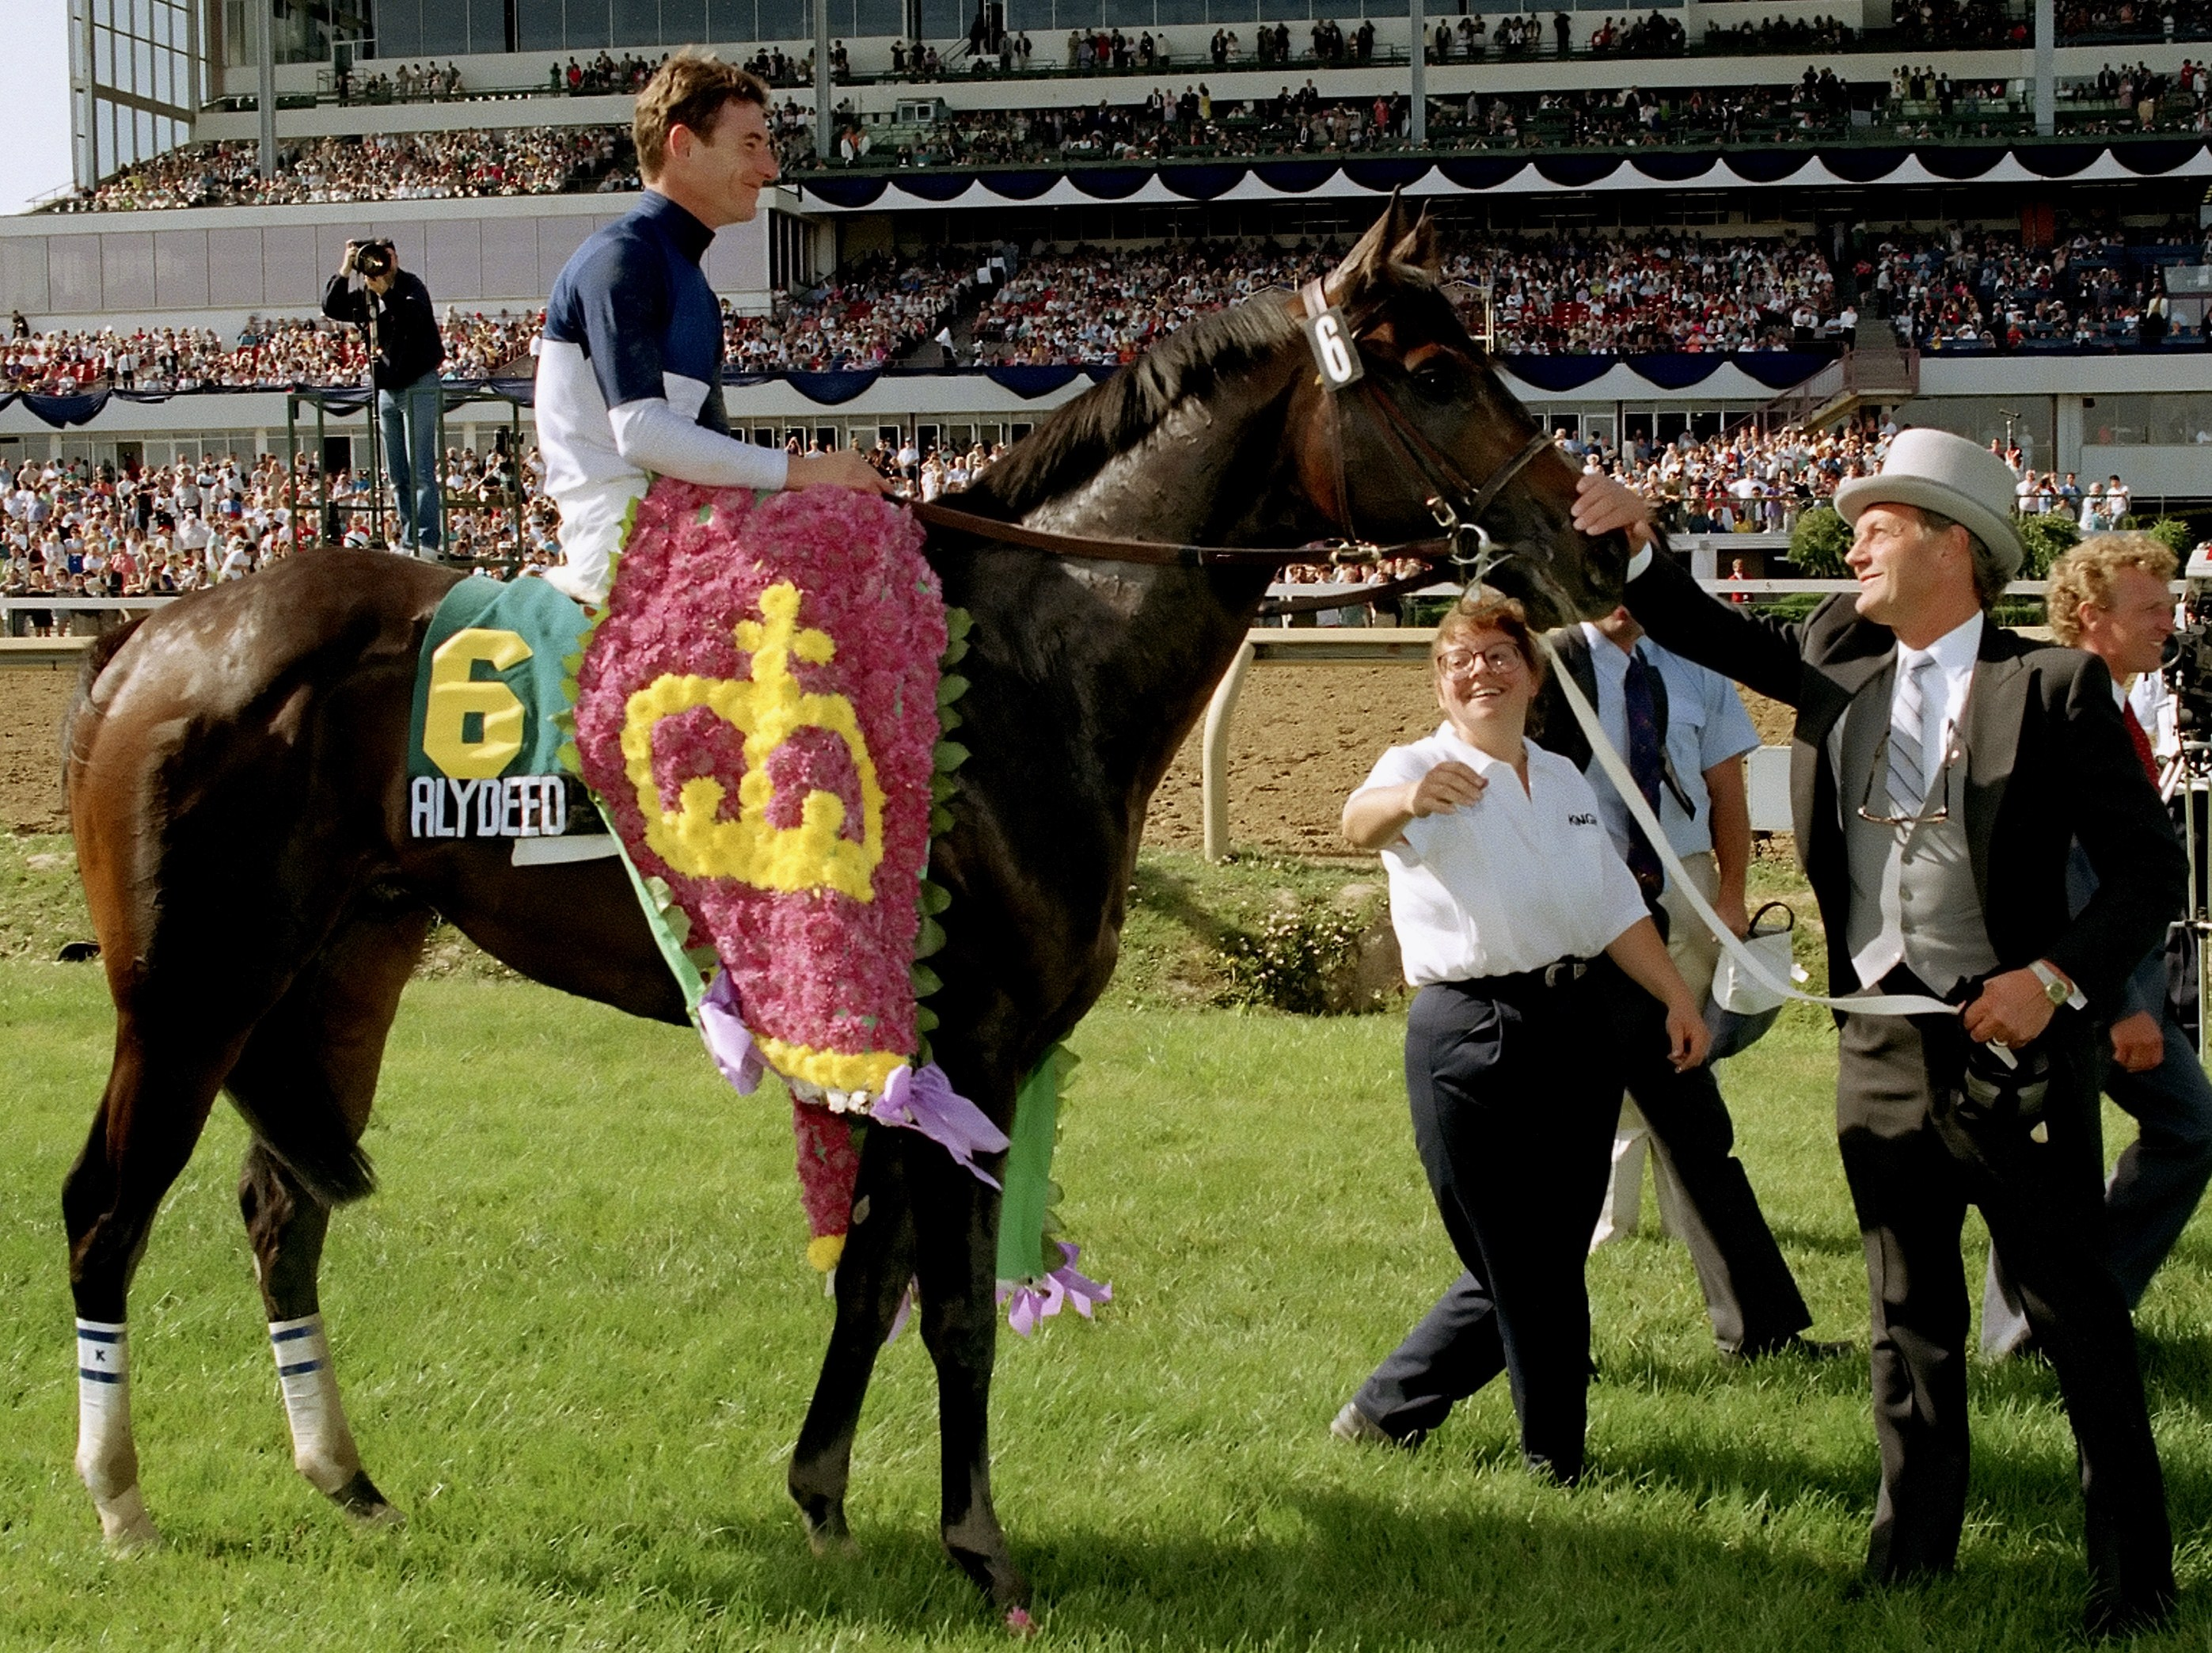 Roger Attfield and Alydeed (Craig Perret up) in the winner's circle for the 1992 Queen's Plate at Woodbine (Woodbine Photo)